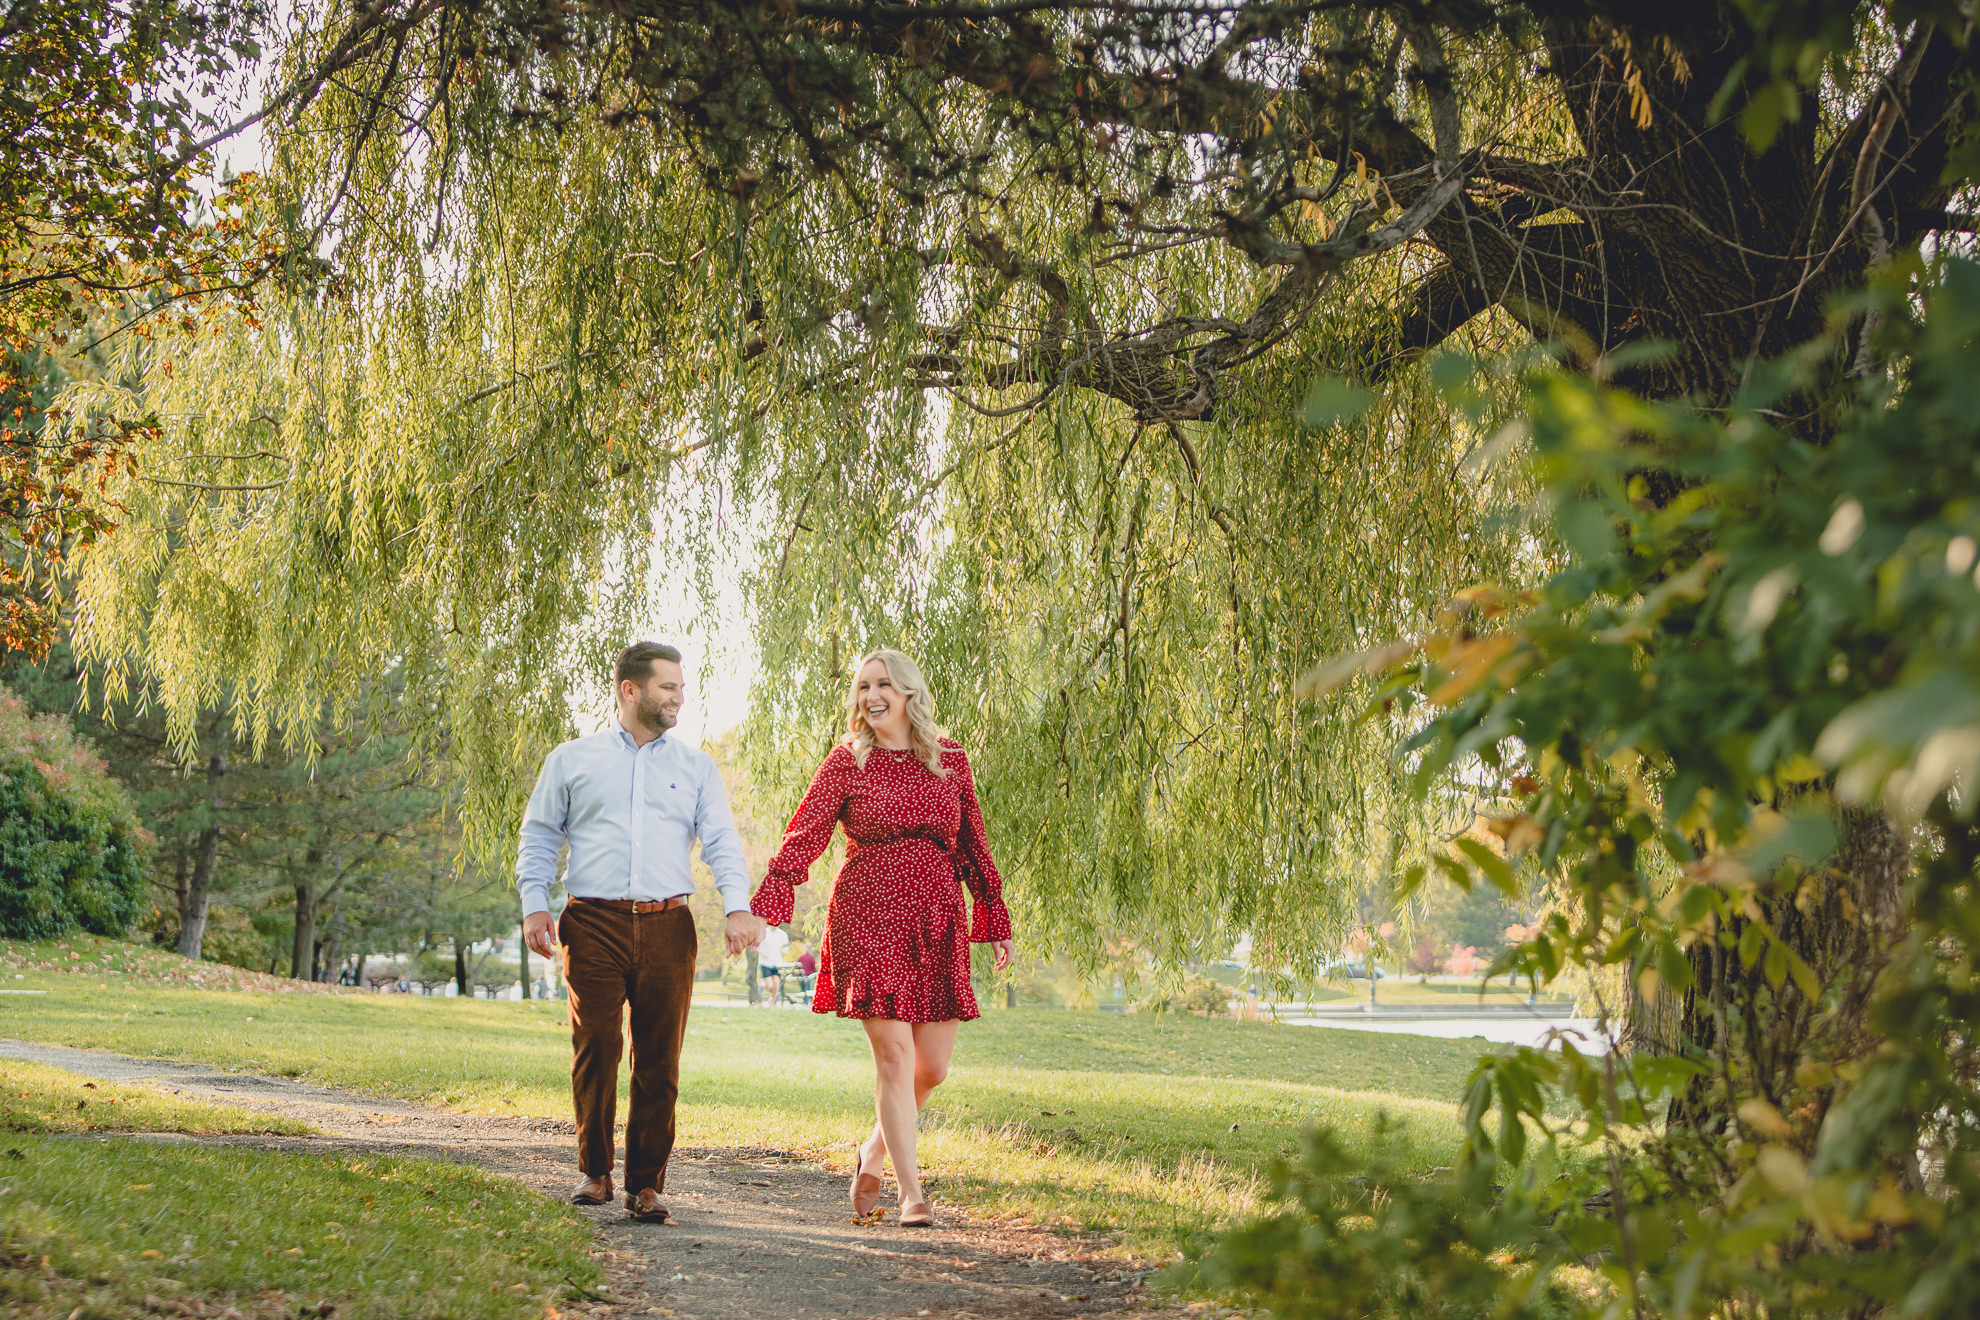 wedding engagement photography at hoyt lake in Delaware Park in Buffalo, NY